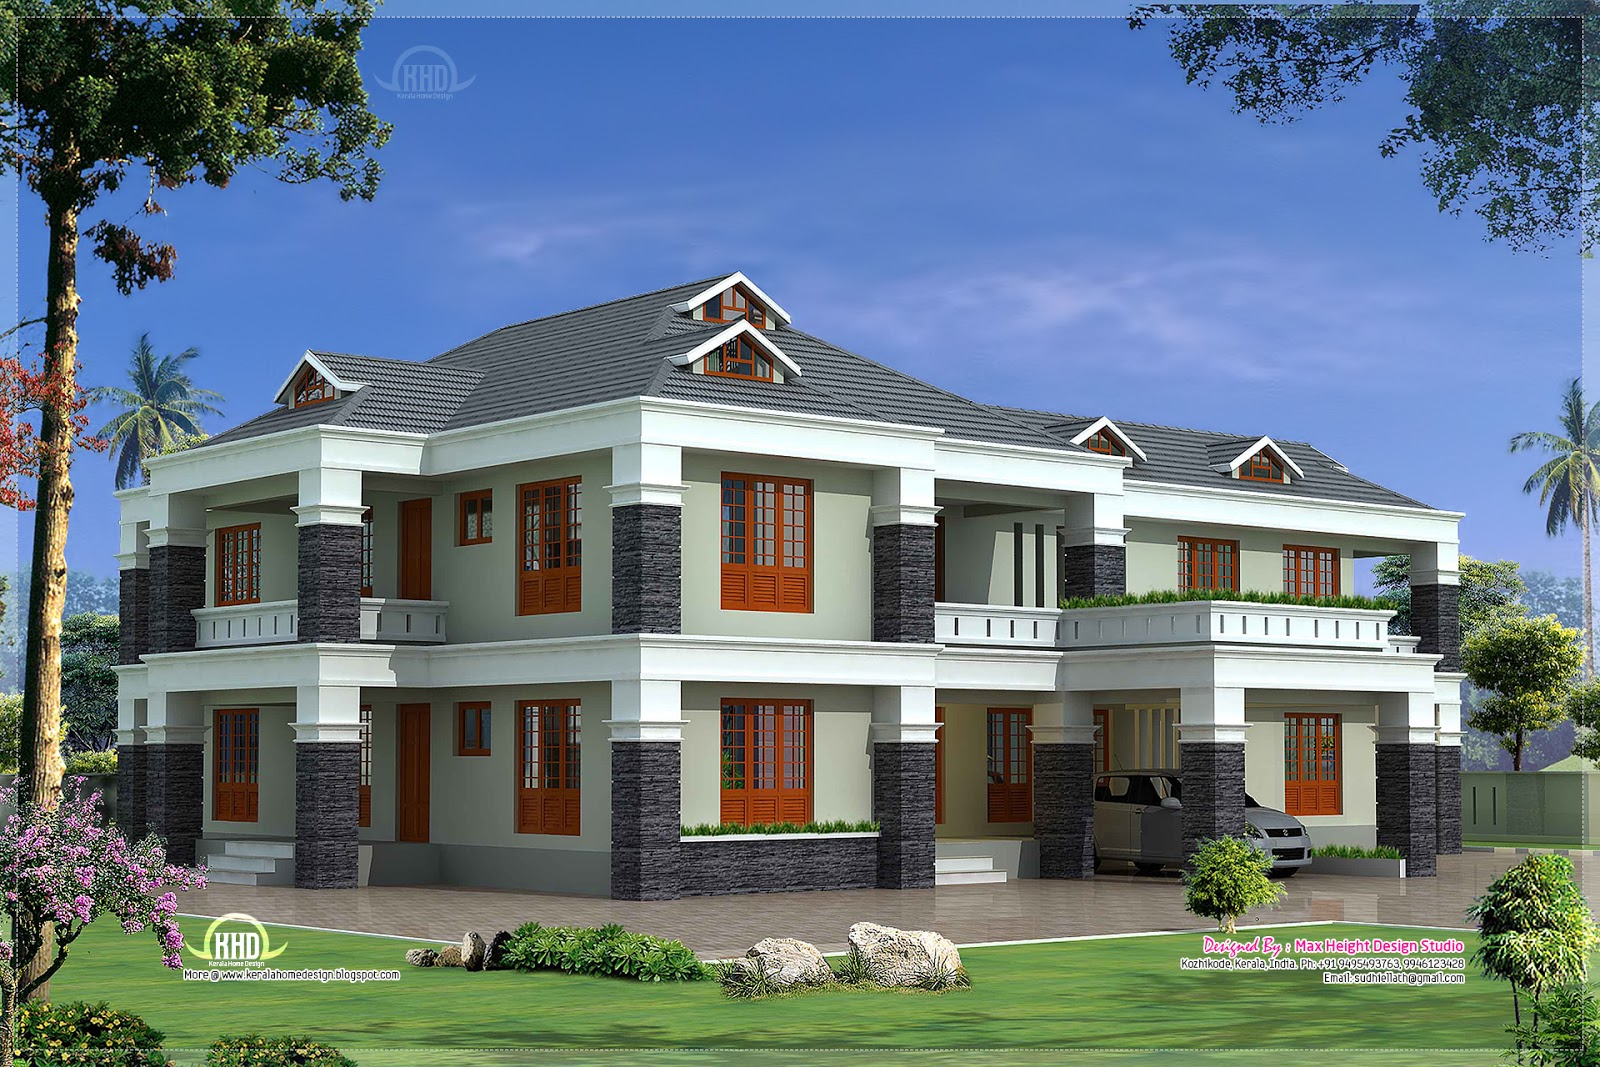 ... sq.feet luxury villa exterior - Kerala home design and floor plans